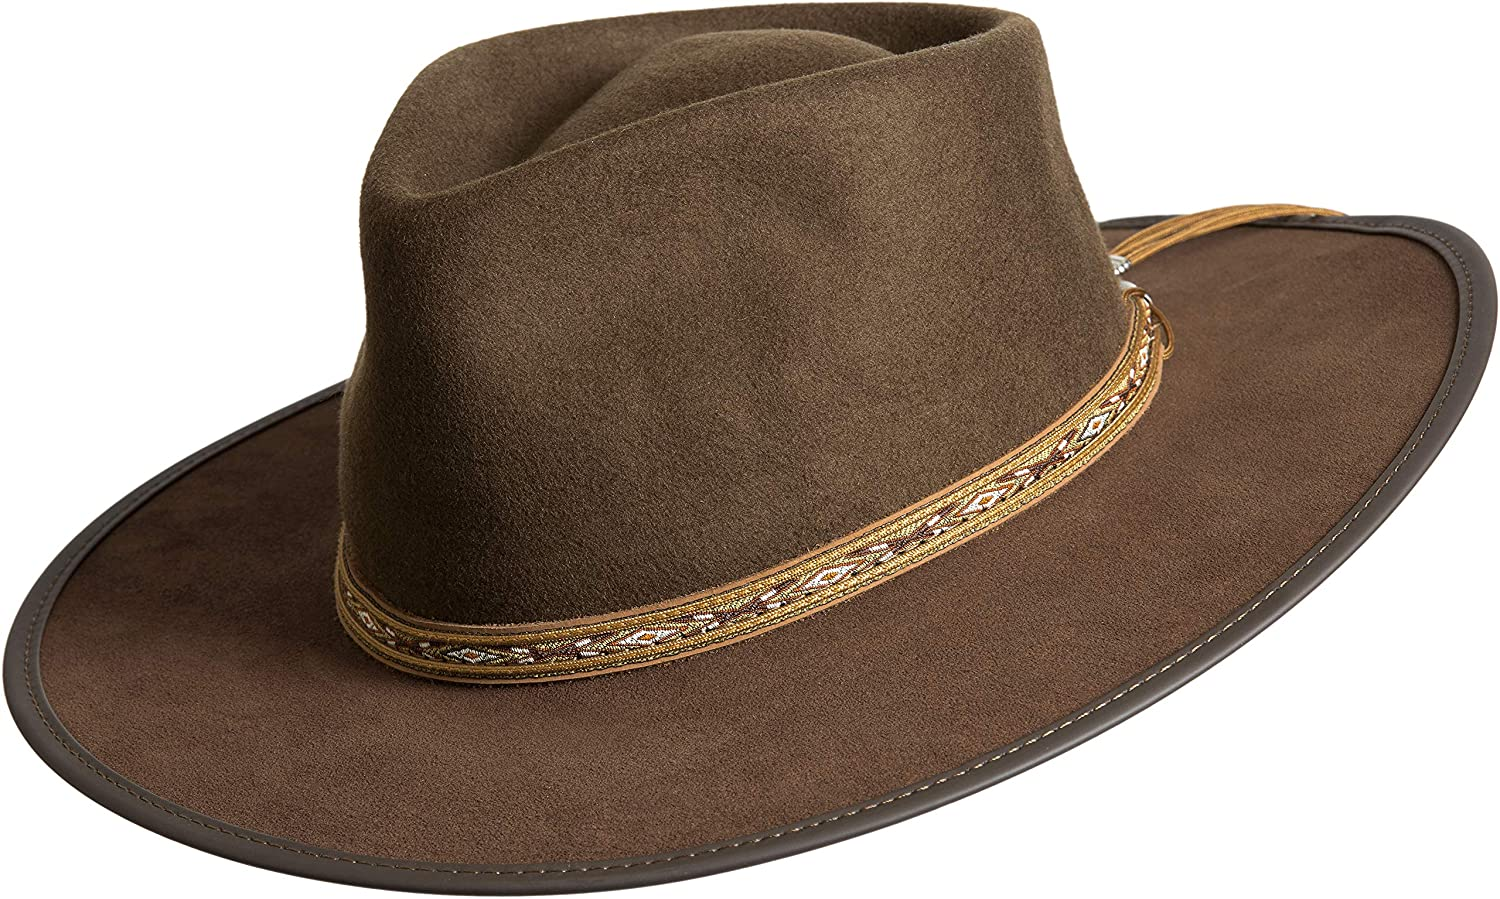 ee7bb9f8e0c Overland Sheepskin Co Bushwick Wool Felt Western Fedora Hat at Amazon  Women s Clothing store